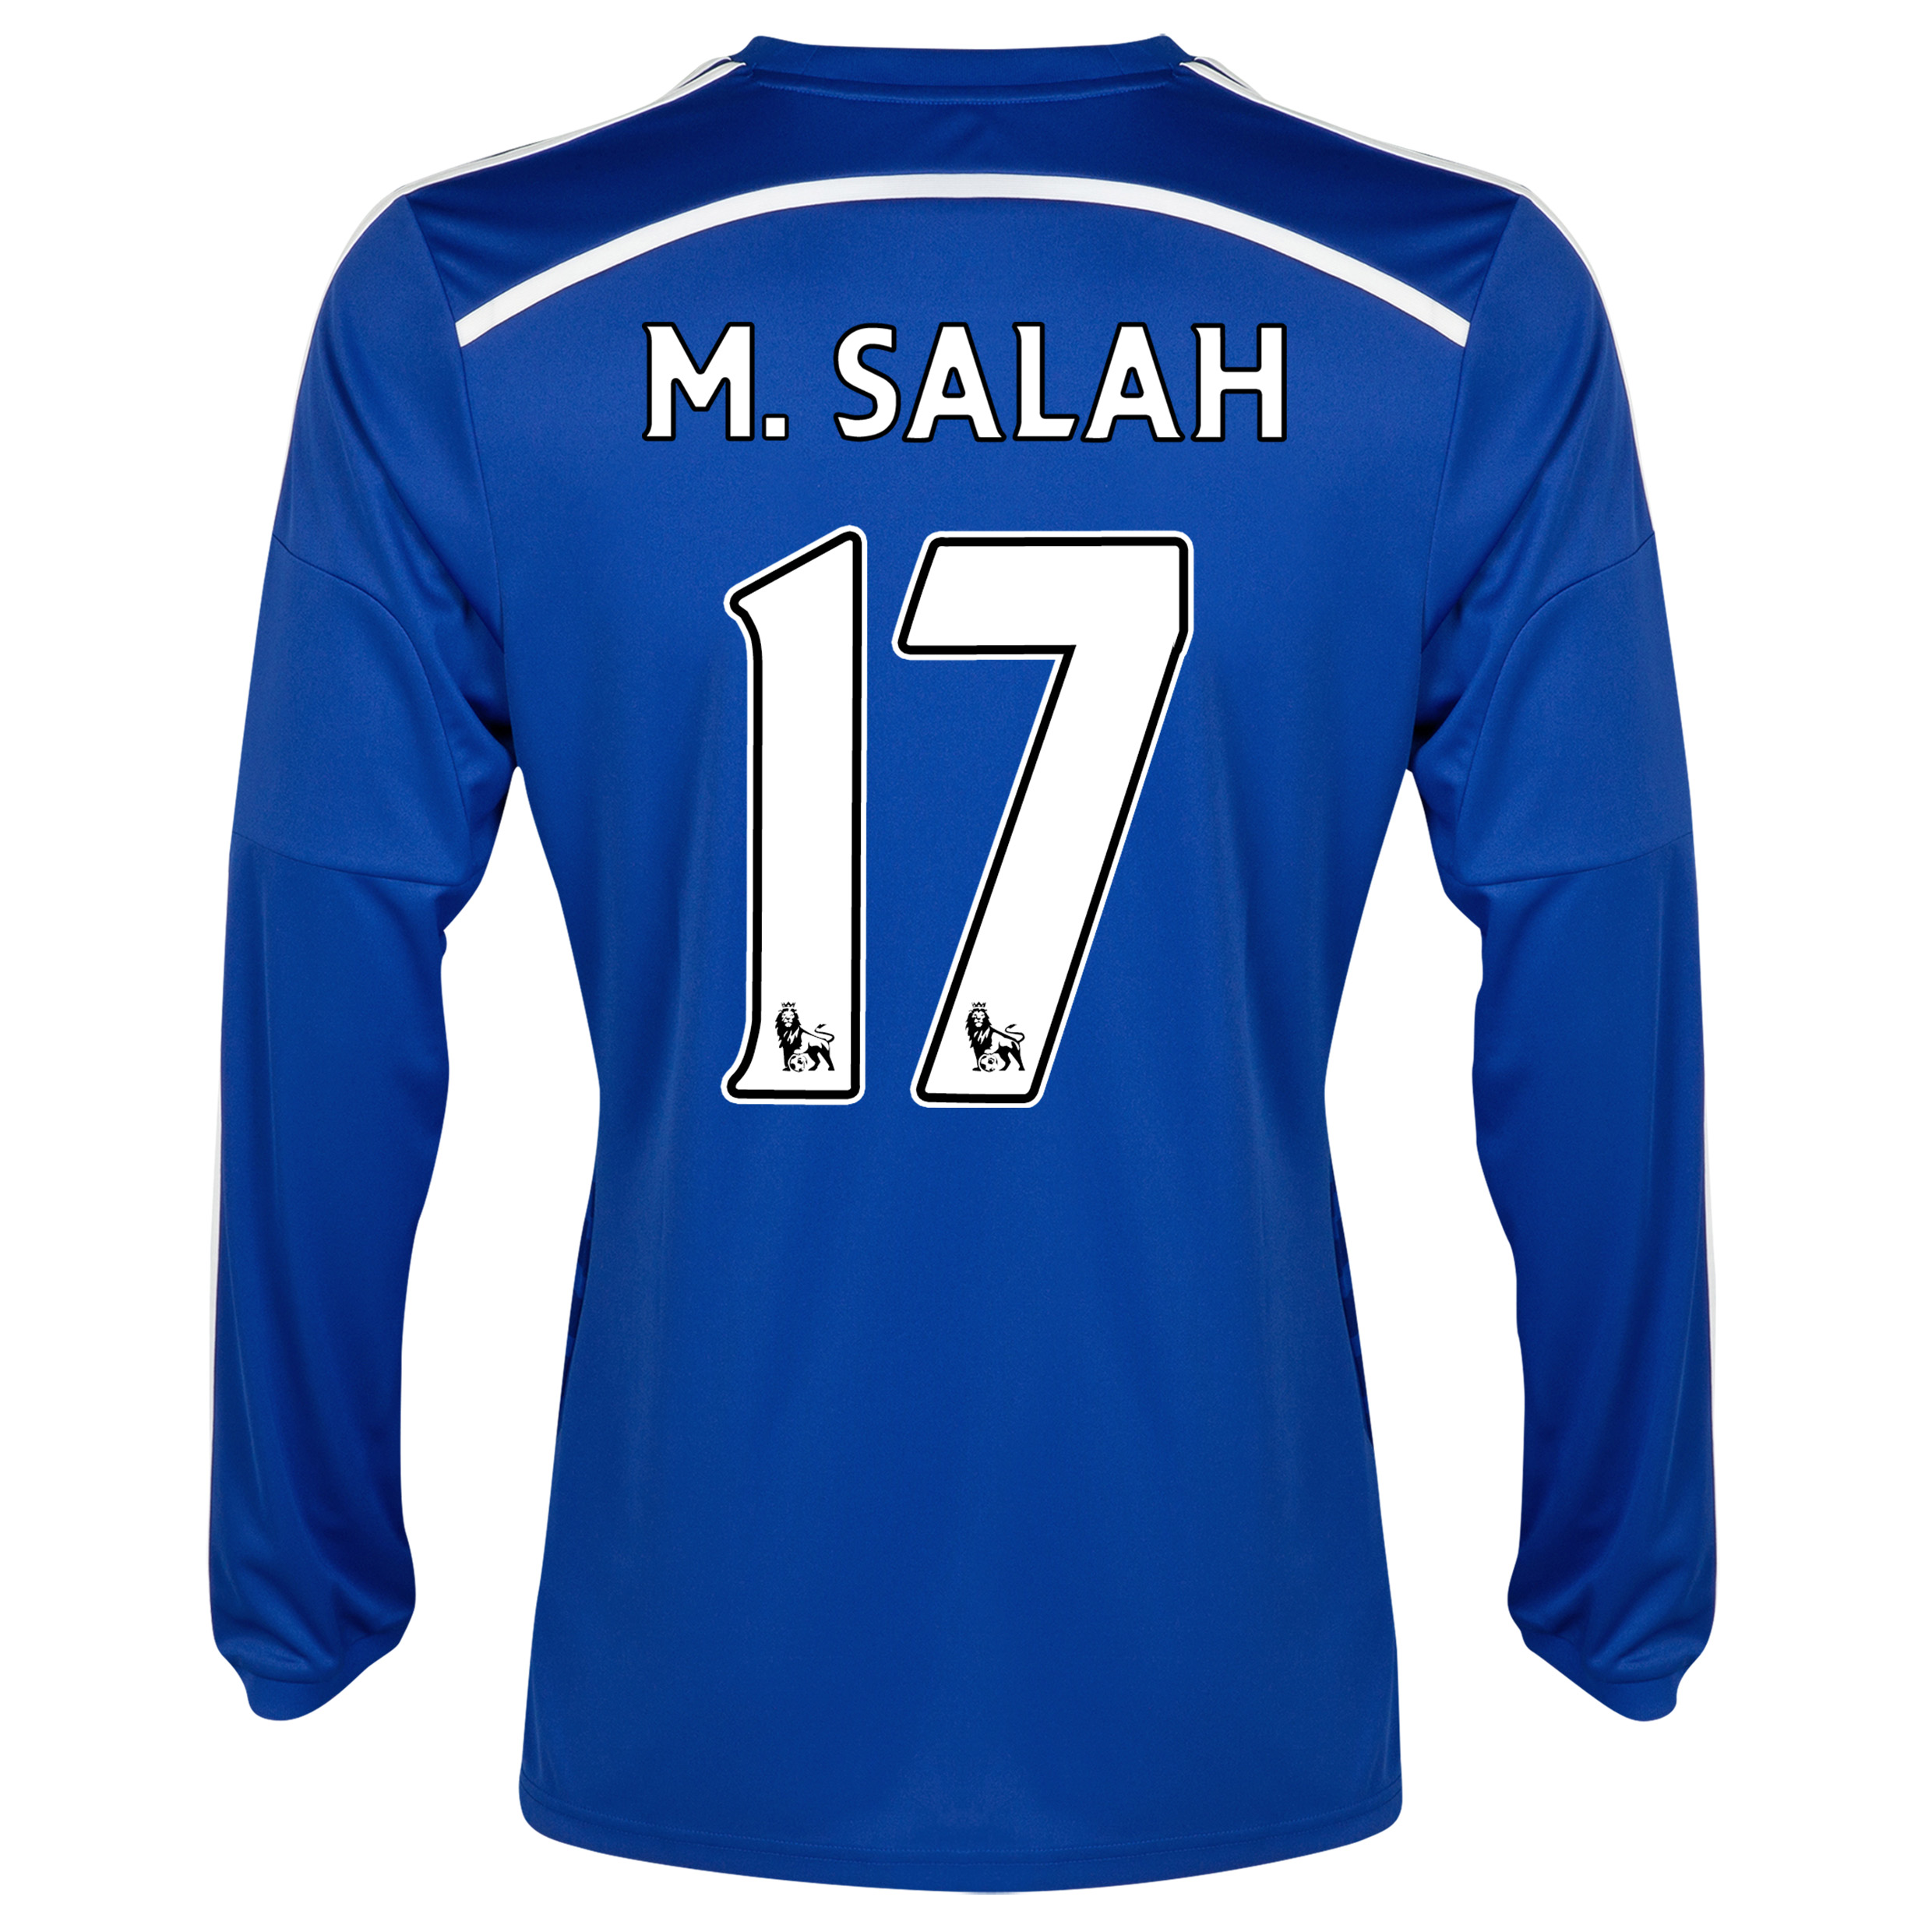 Chelsea Home Shirt 2014/15 - Long Sleeve Blue with M. Salah 17 printing